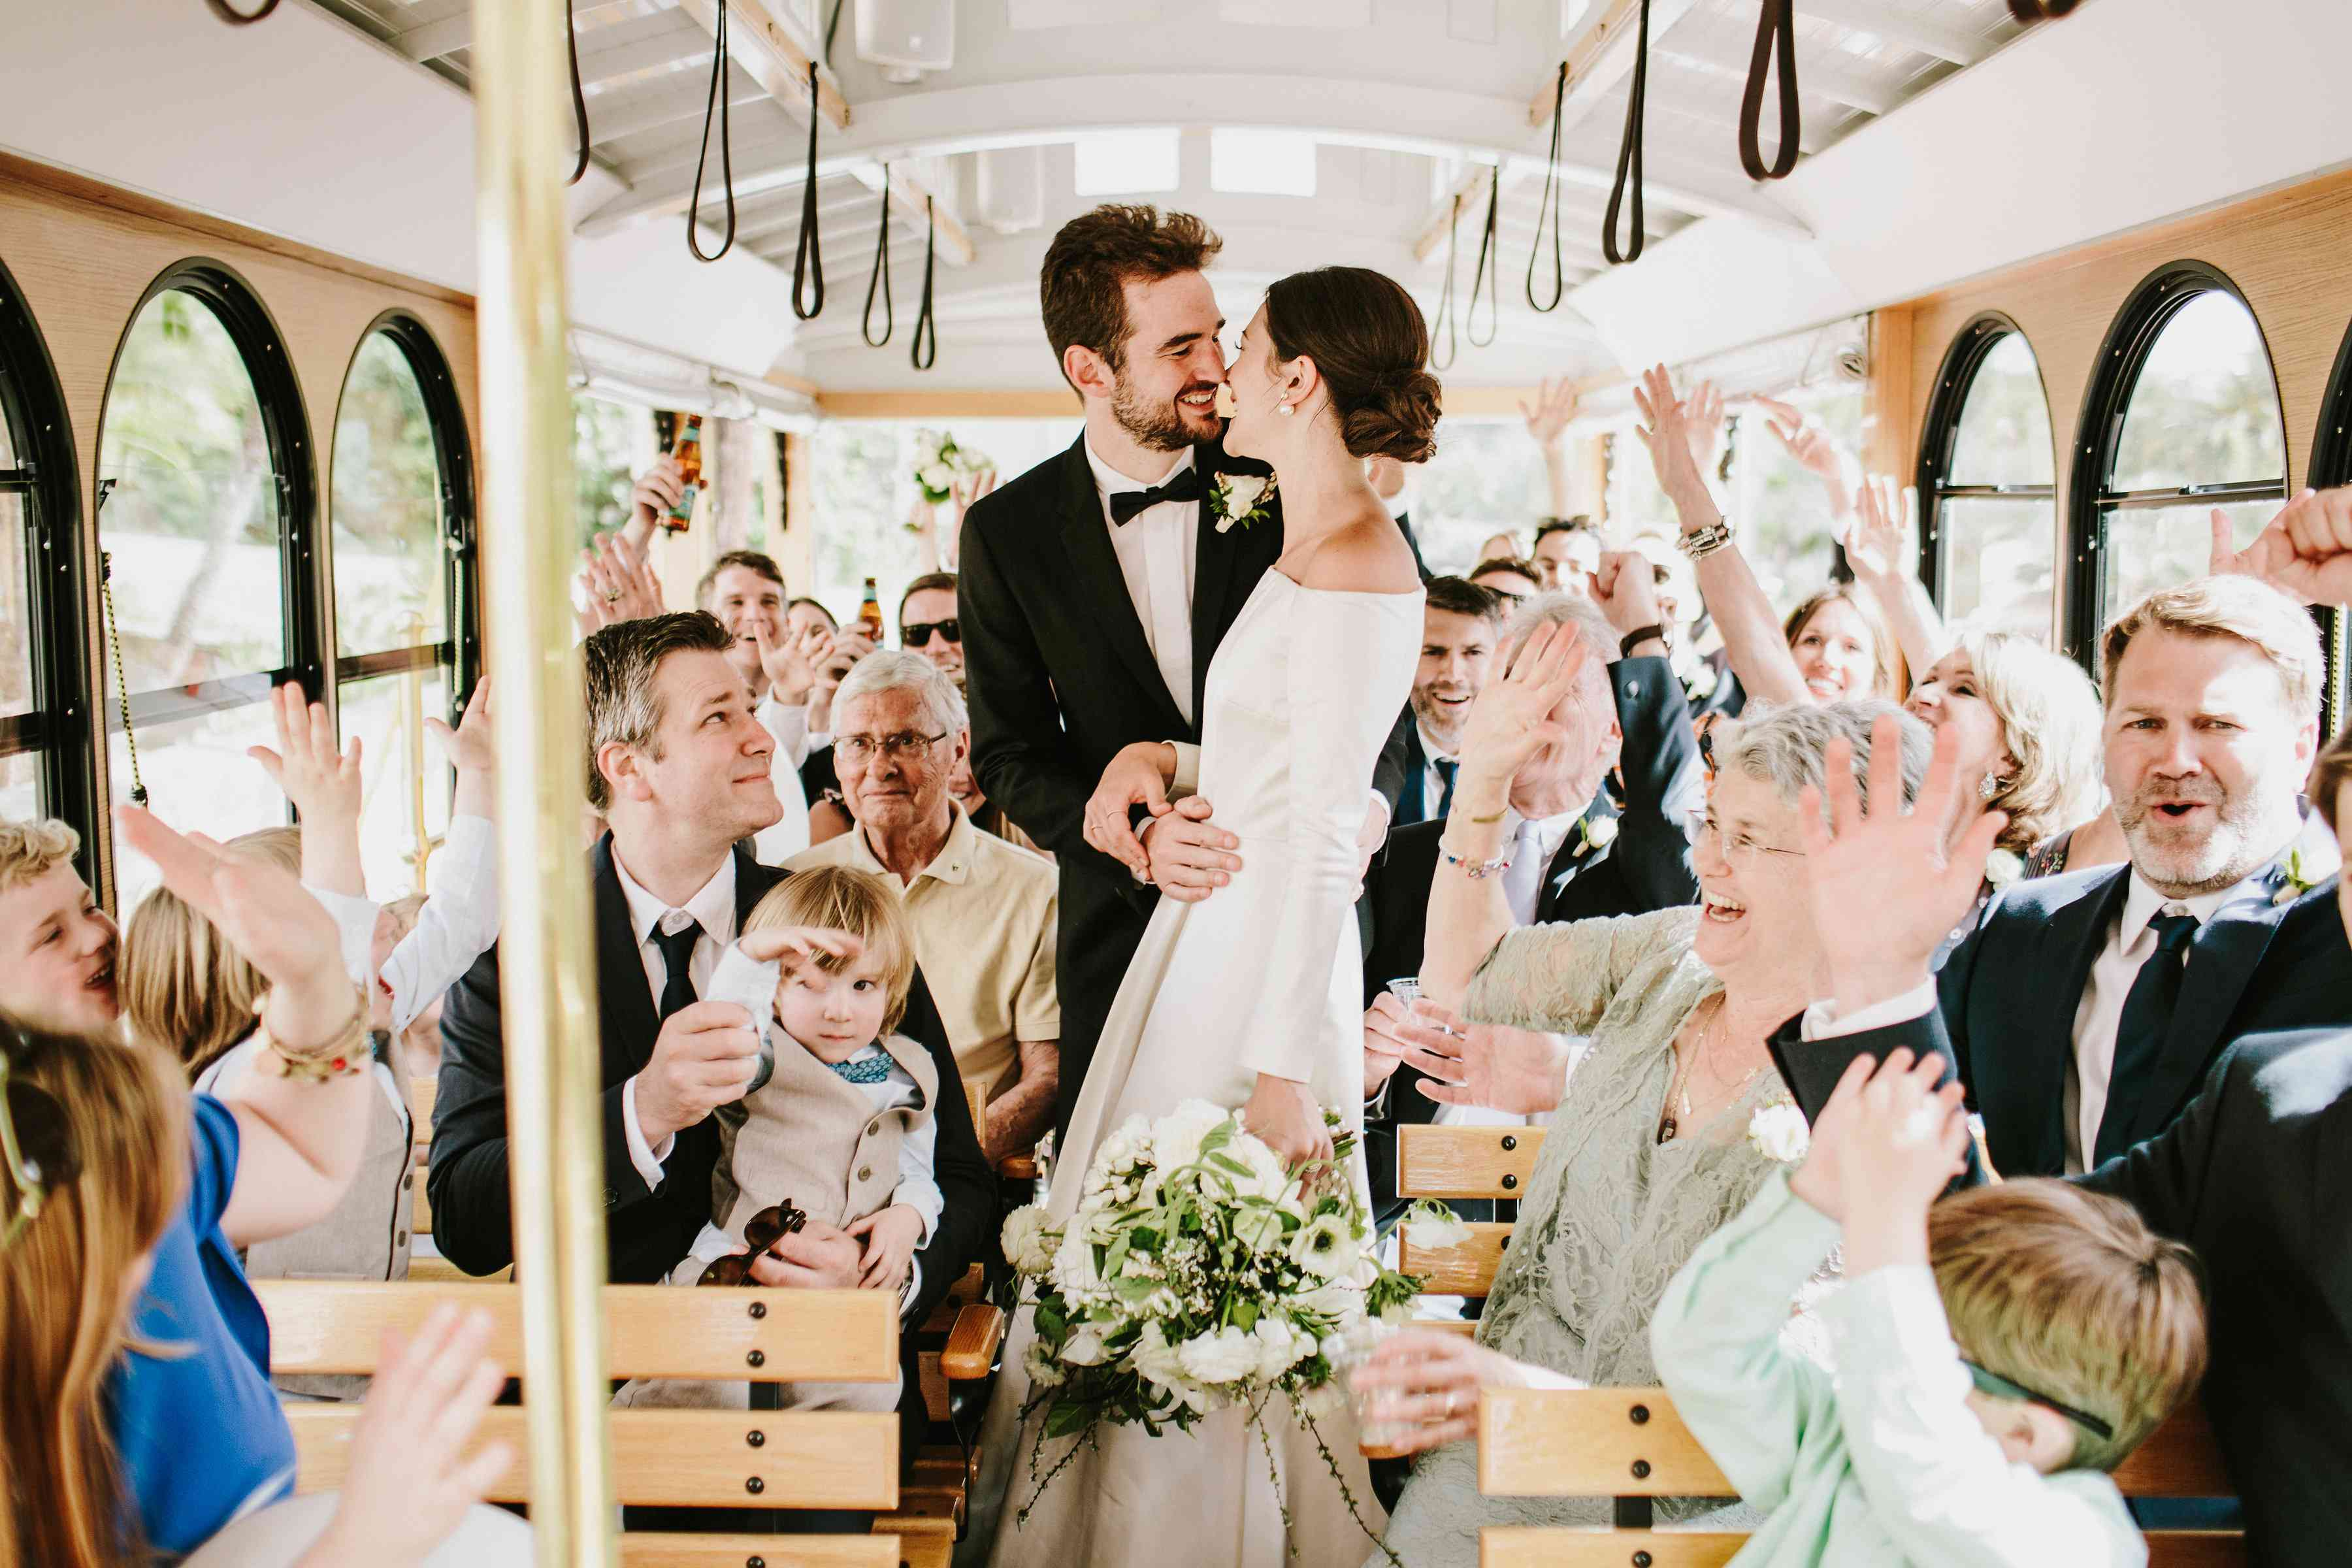 Our Favorite Real Wedding Photos Of 2019